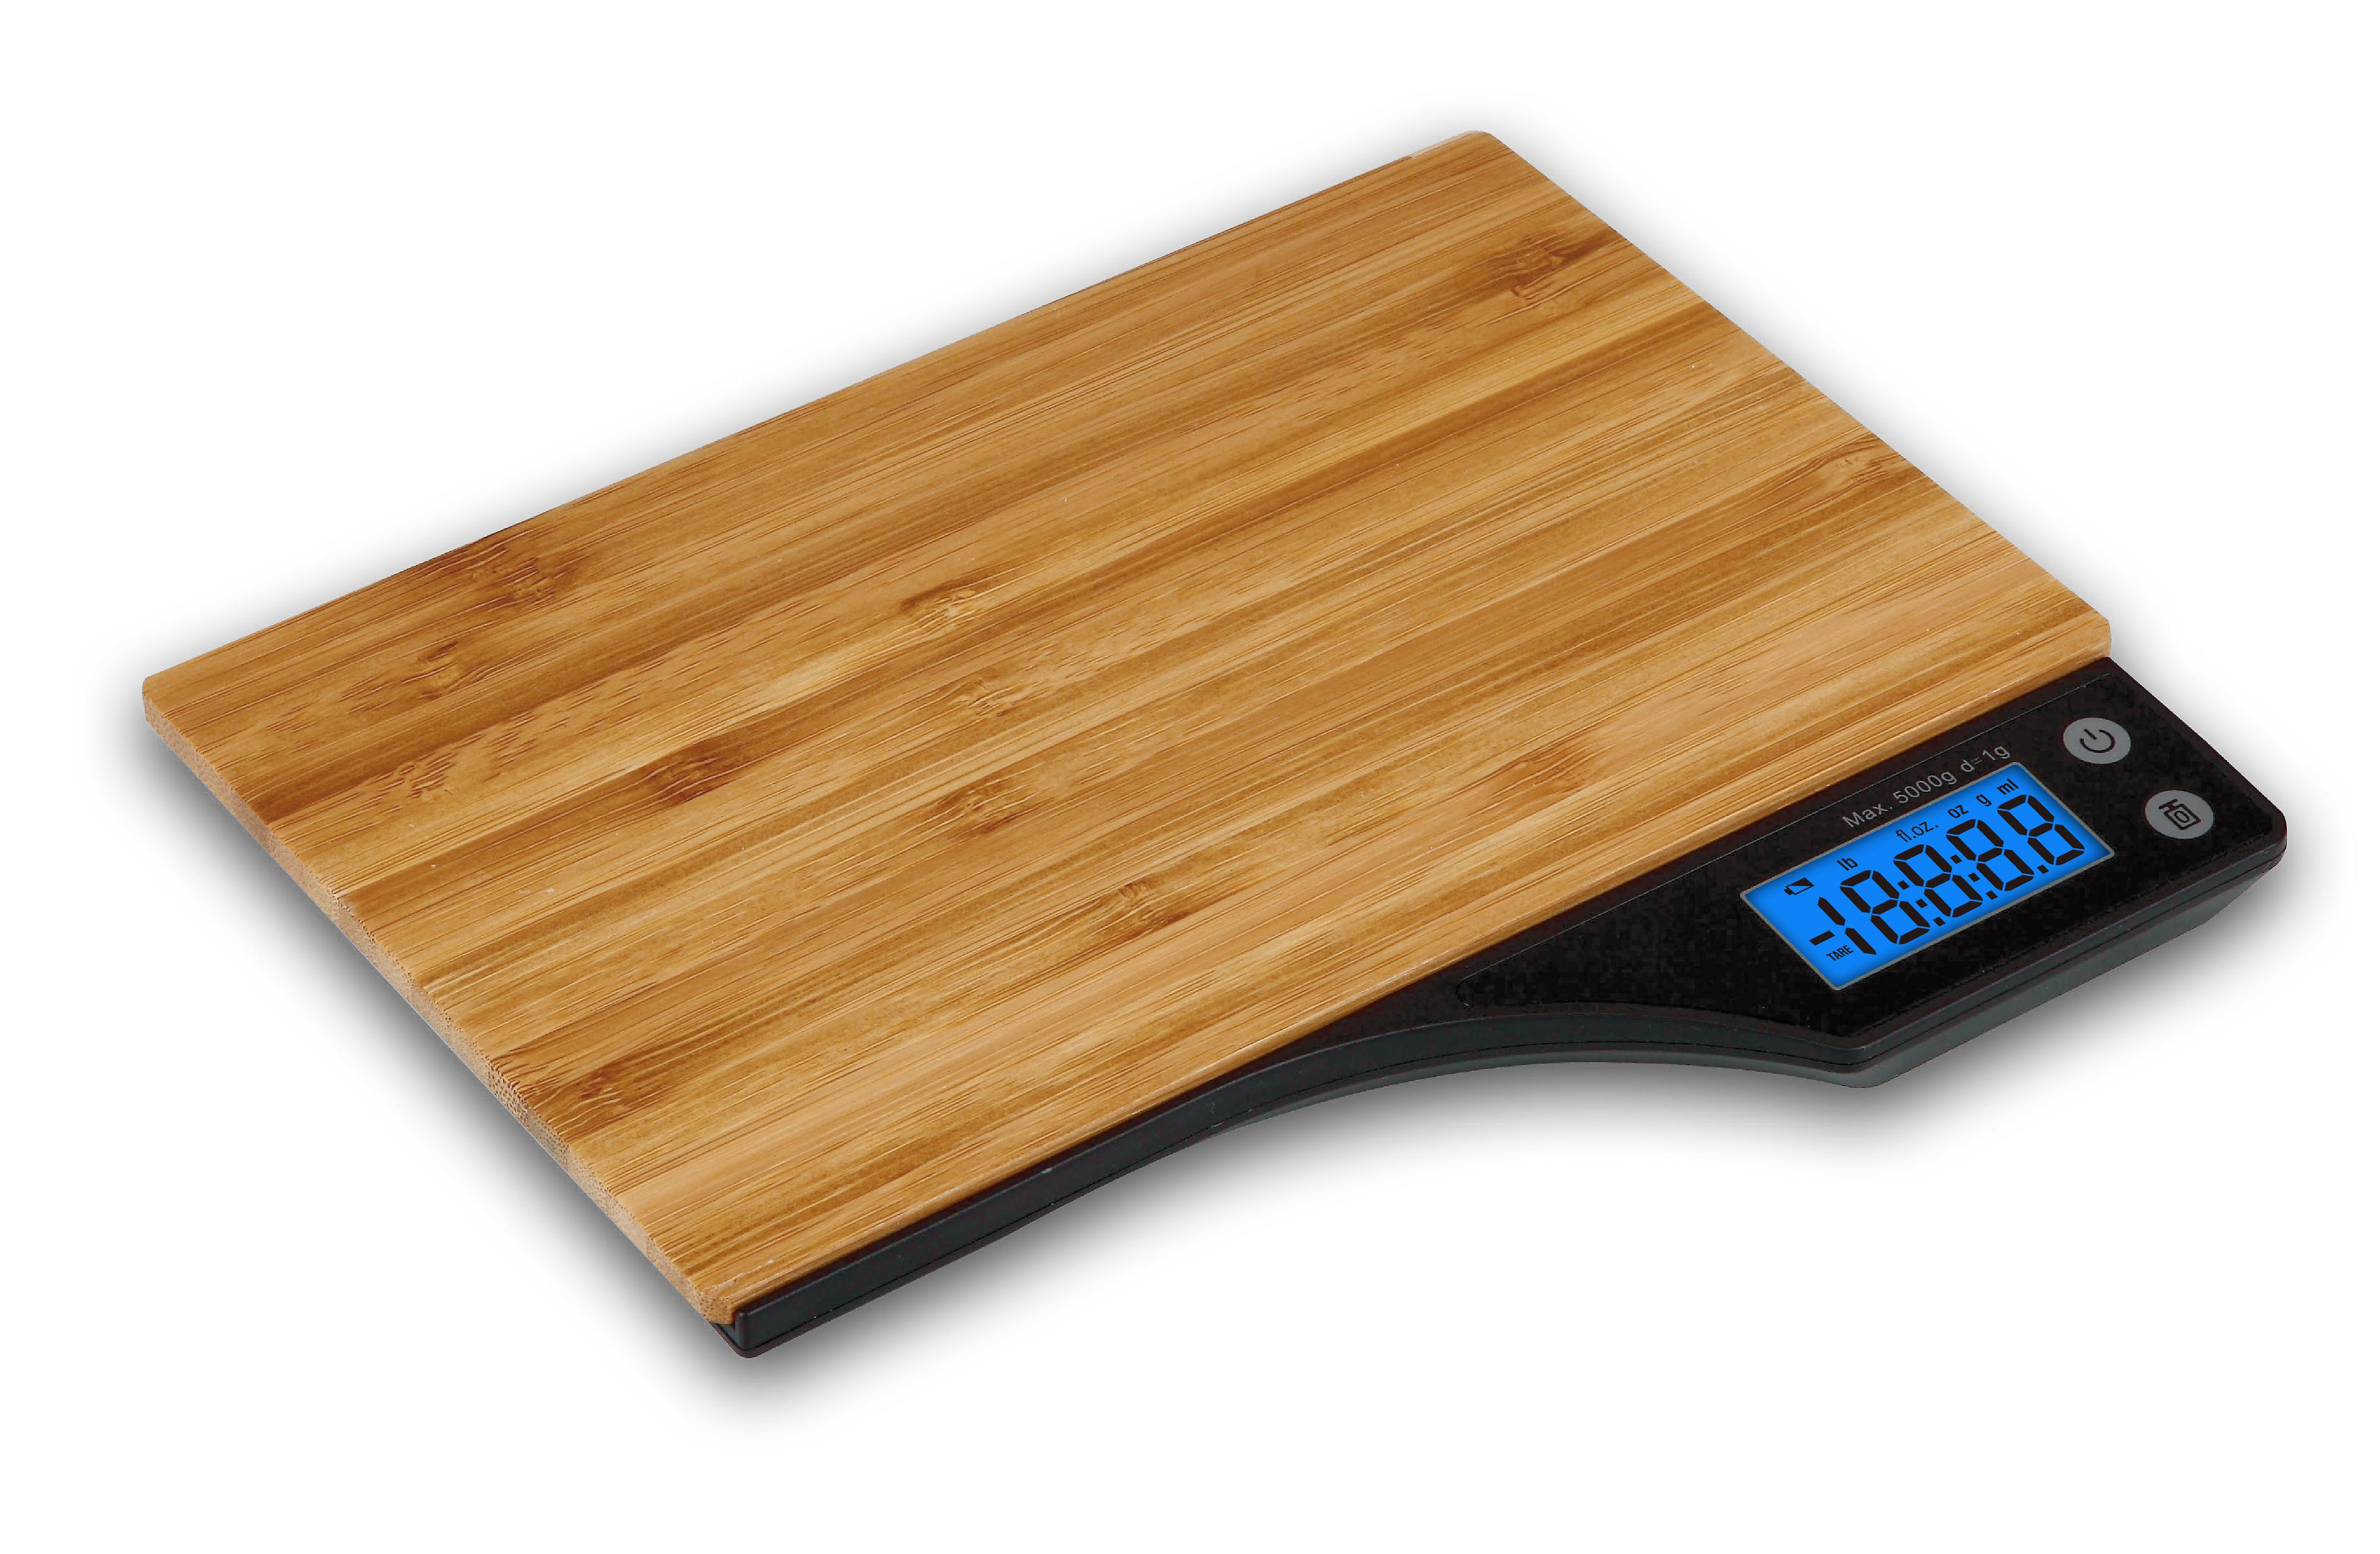 Kabalo Wooden Bamboo Kitchen Household Food Cooking Weighing Scale 5kg capacity 5000g/1g, Batteries Included! Flat Slim Design, Premier LCD Digital Electronic, with blue backlight